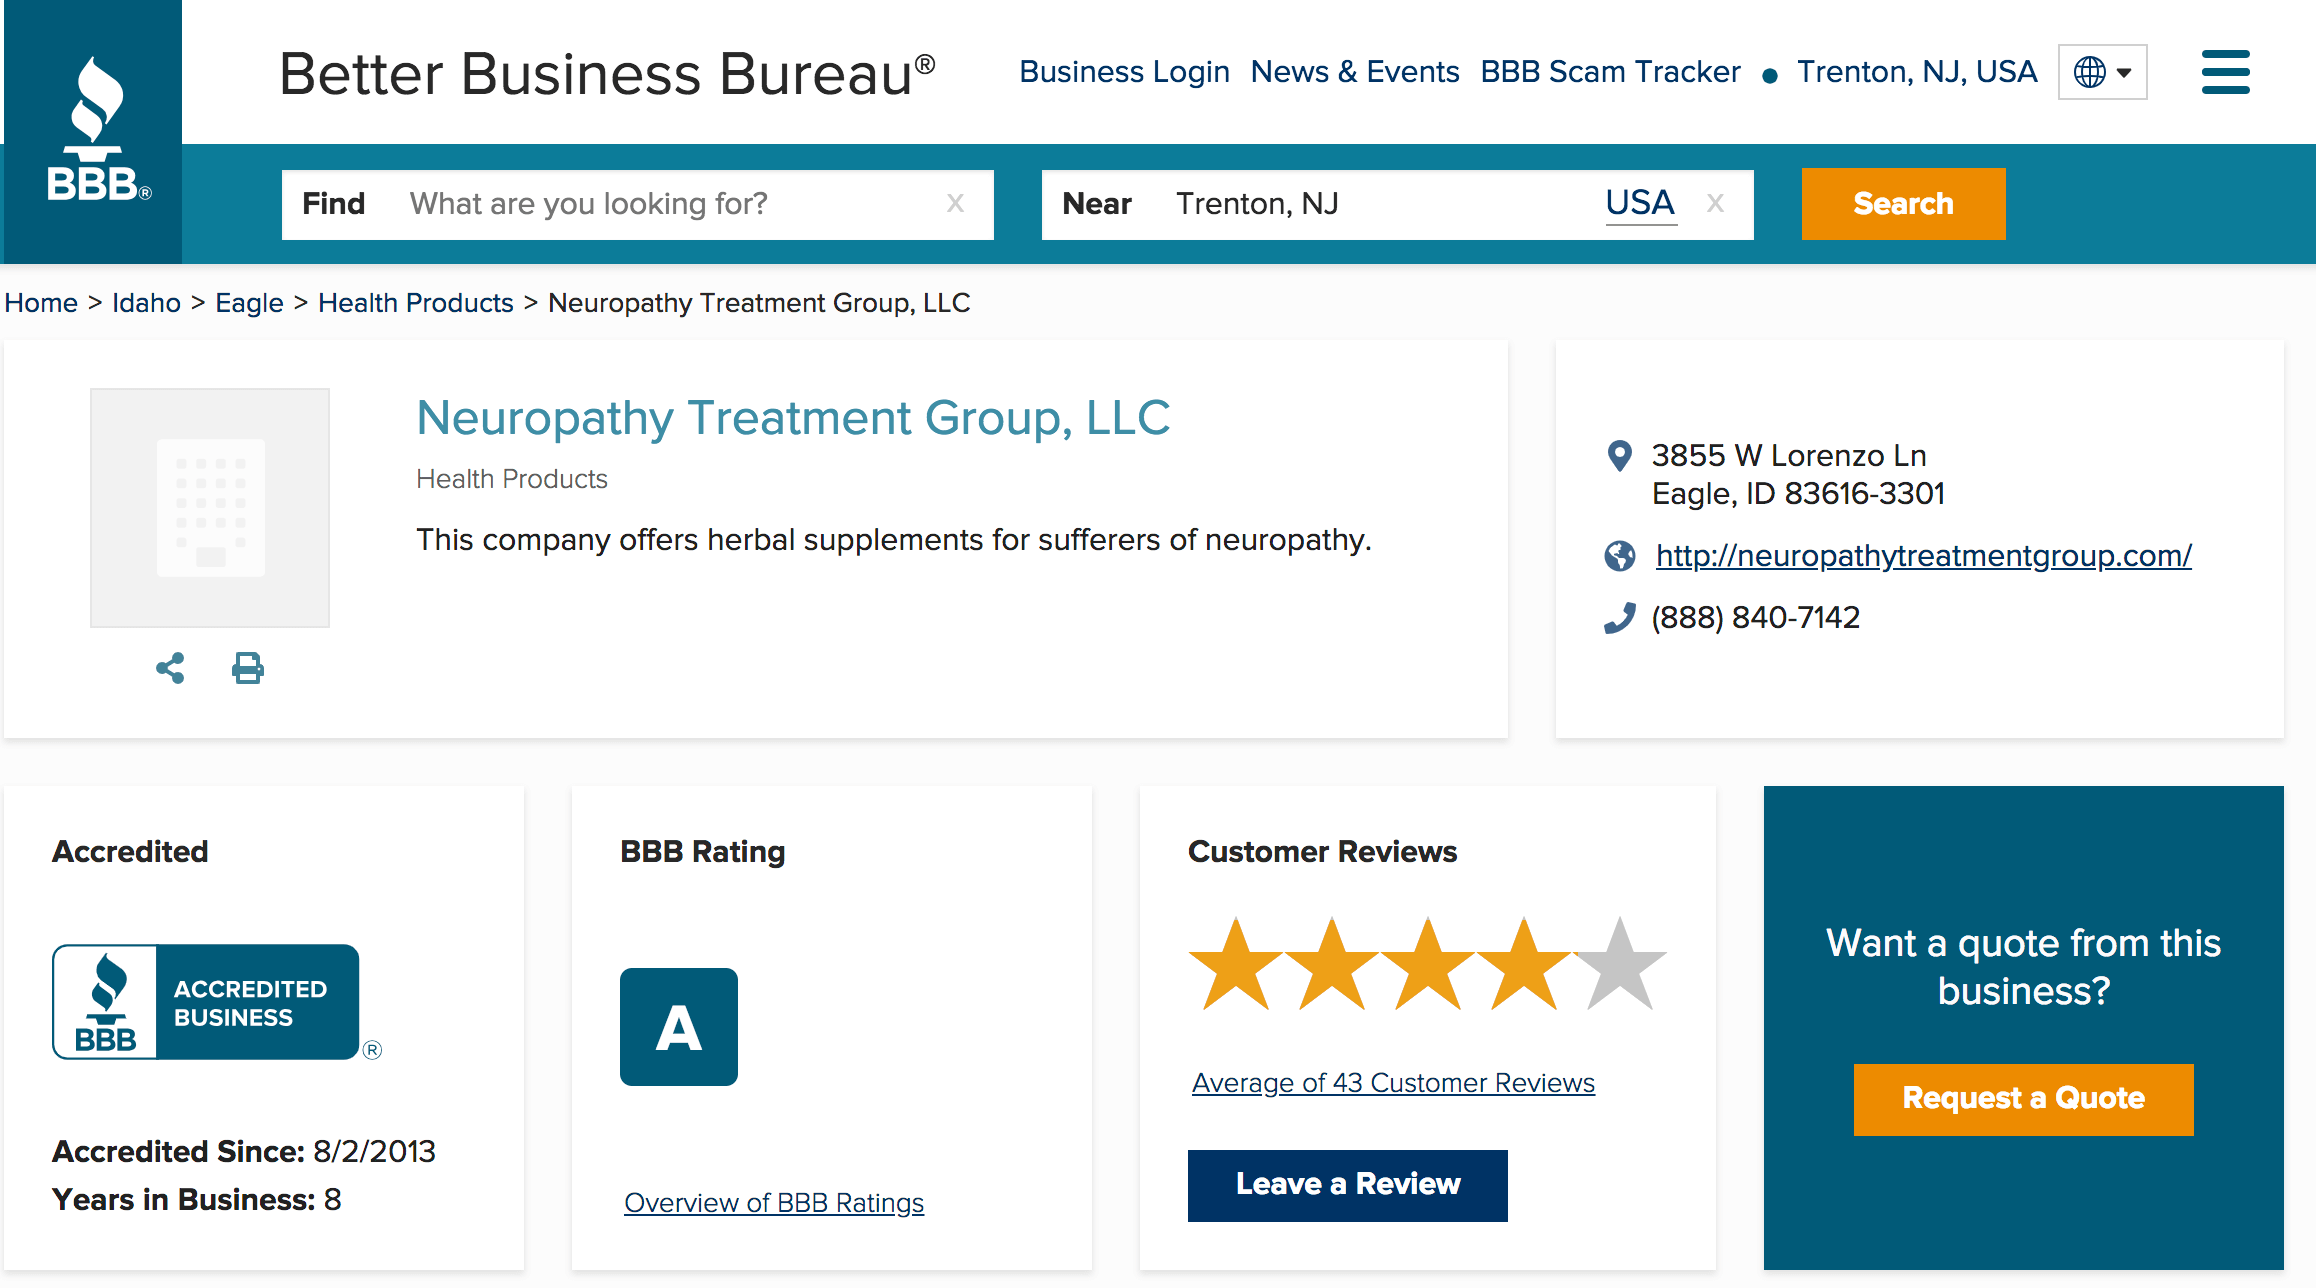 Neuropathy Treatment Group, LLC has an A rating with Better Business Bureau